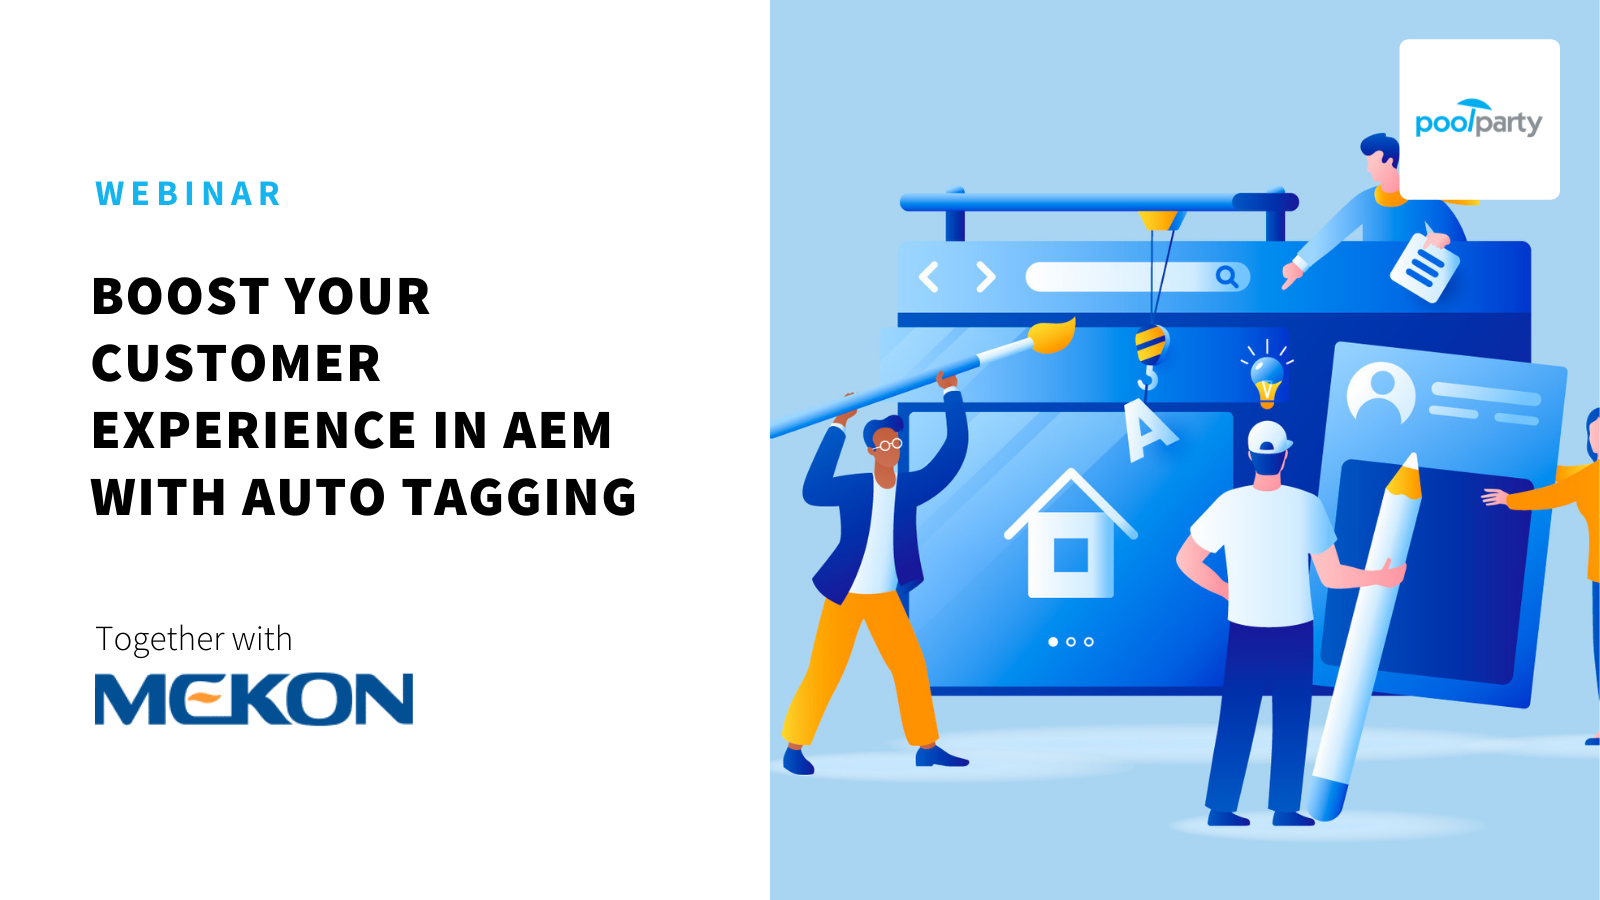 Webinar: Boost your Customer Experience in AEM with Auto Tagging